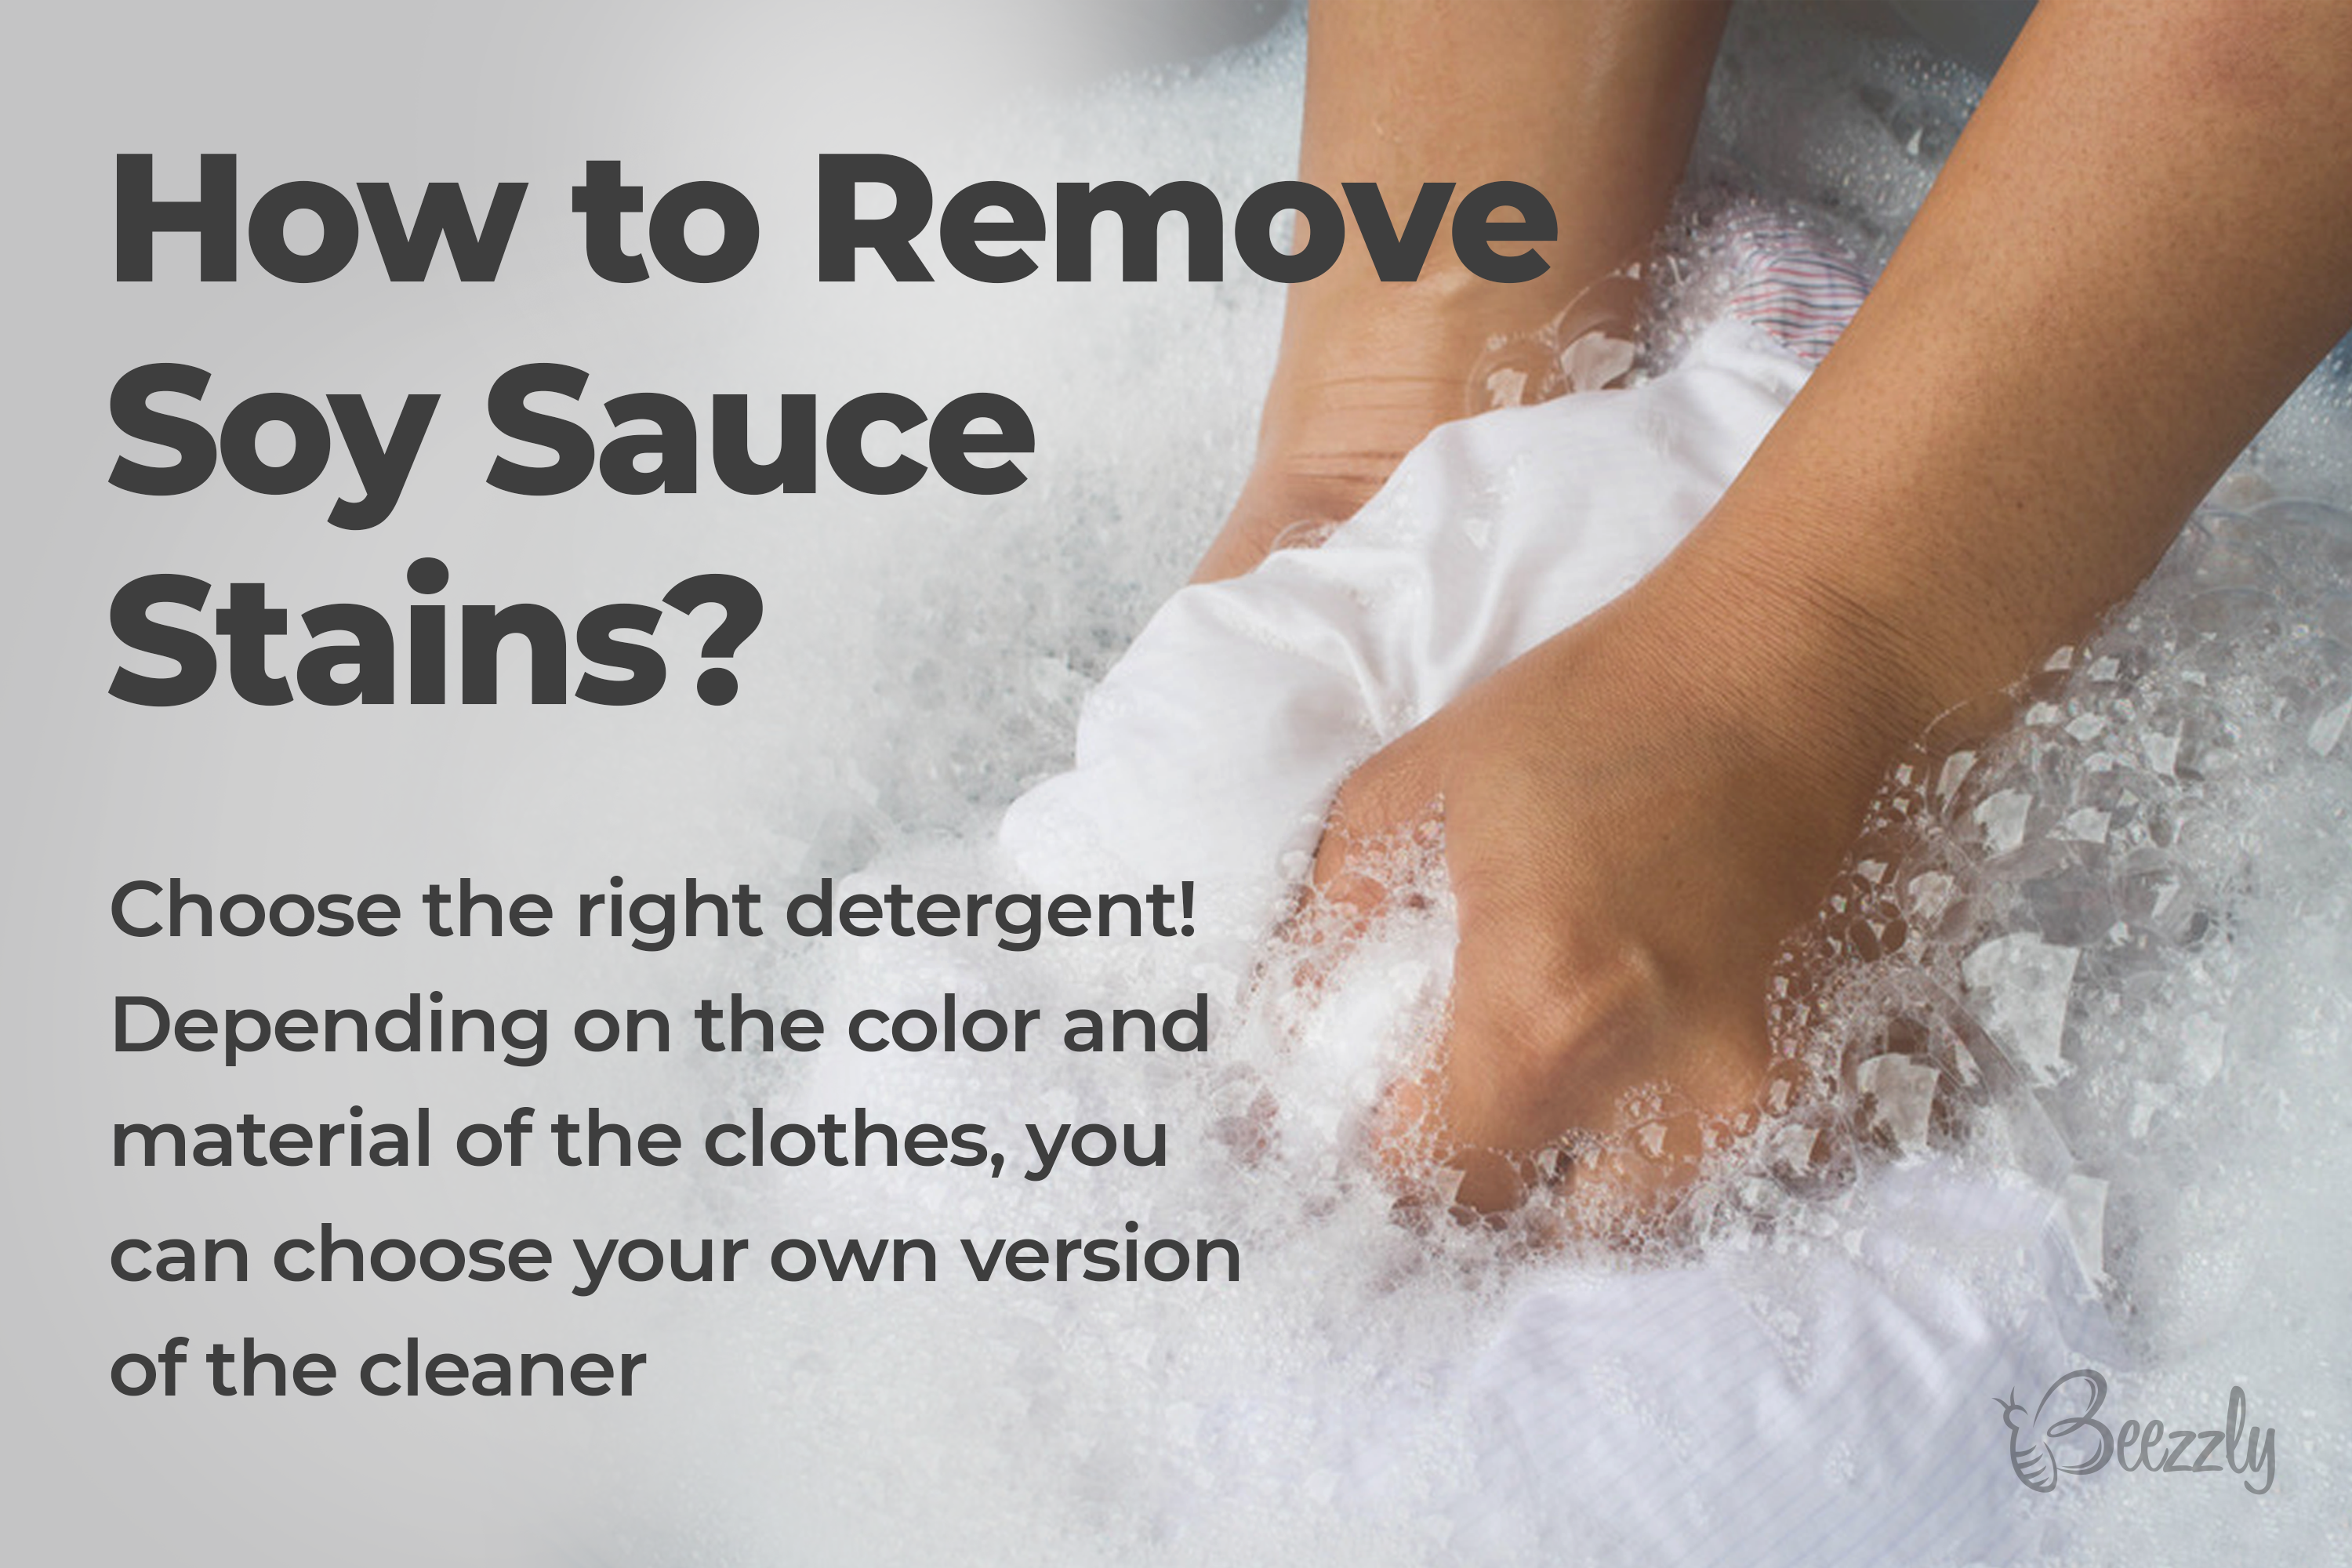 How to remove soy sauce stains